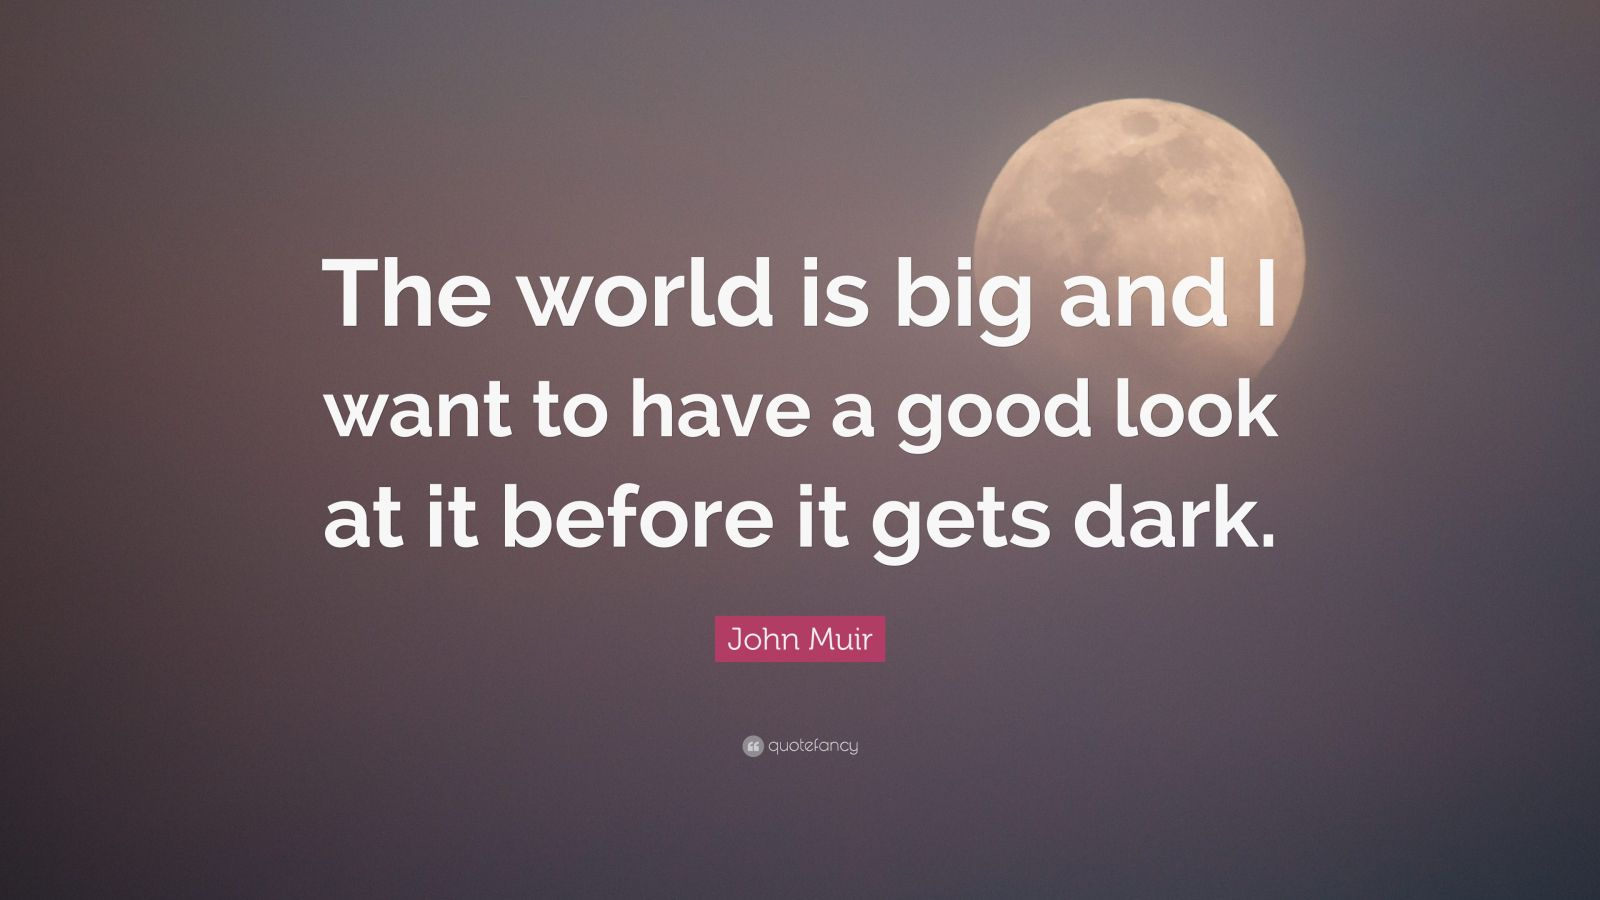 John Muir Quotes Wallpaper John Muir Quote The World Is Big And I Want To Have A